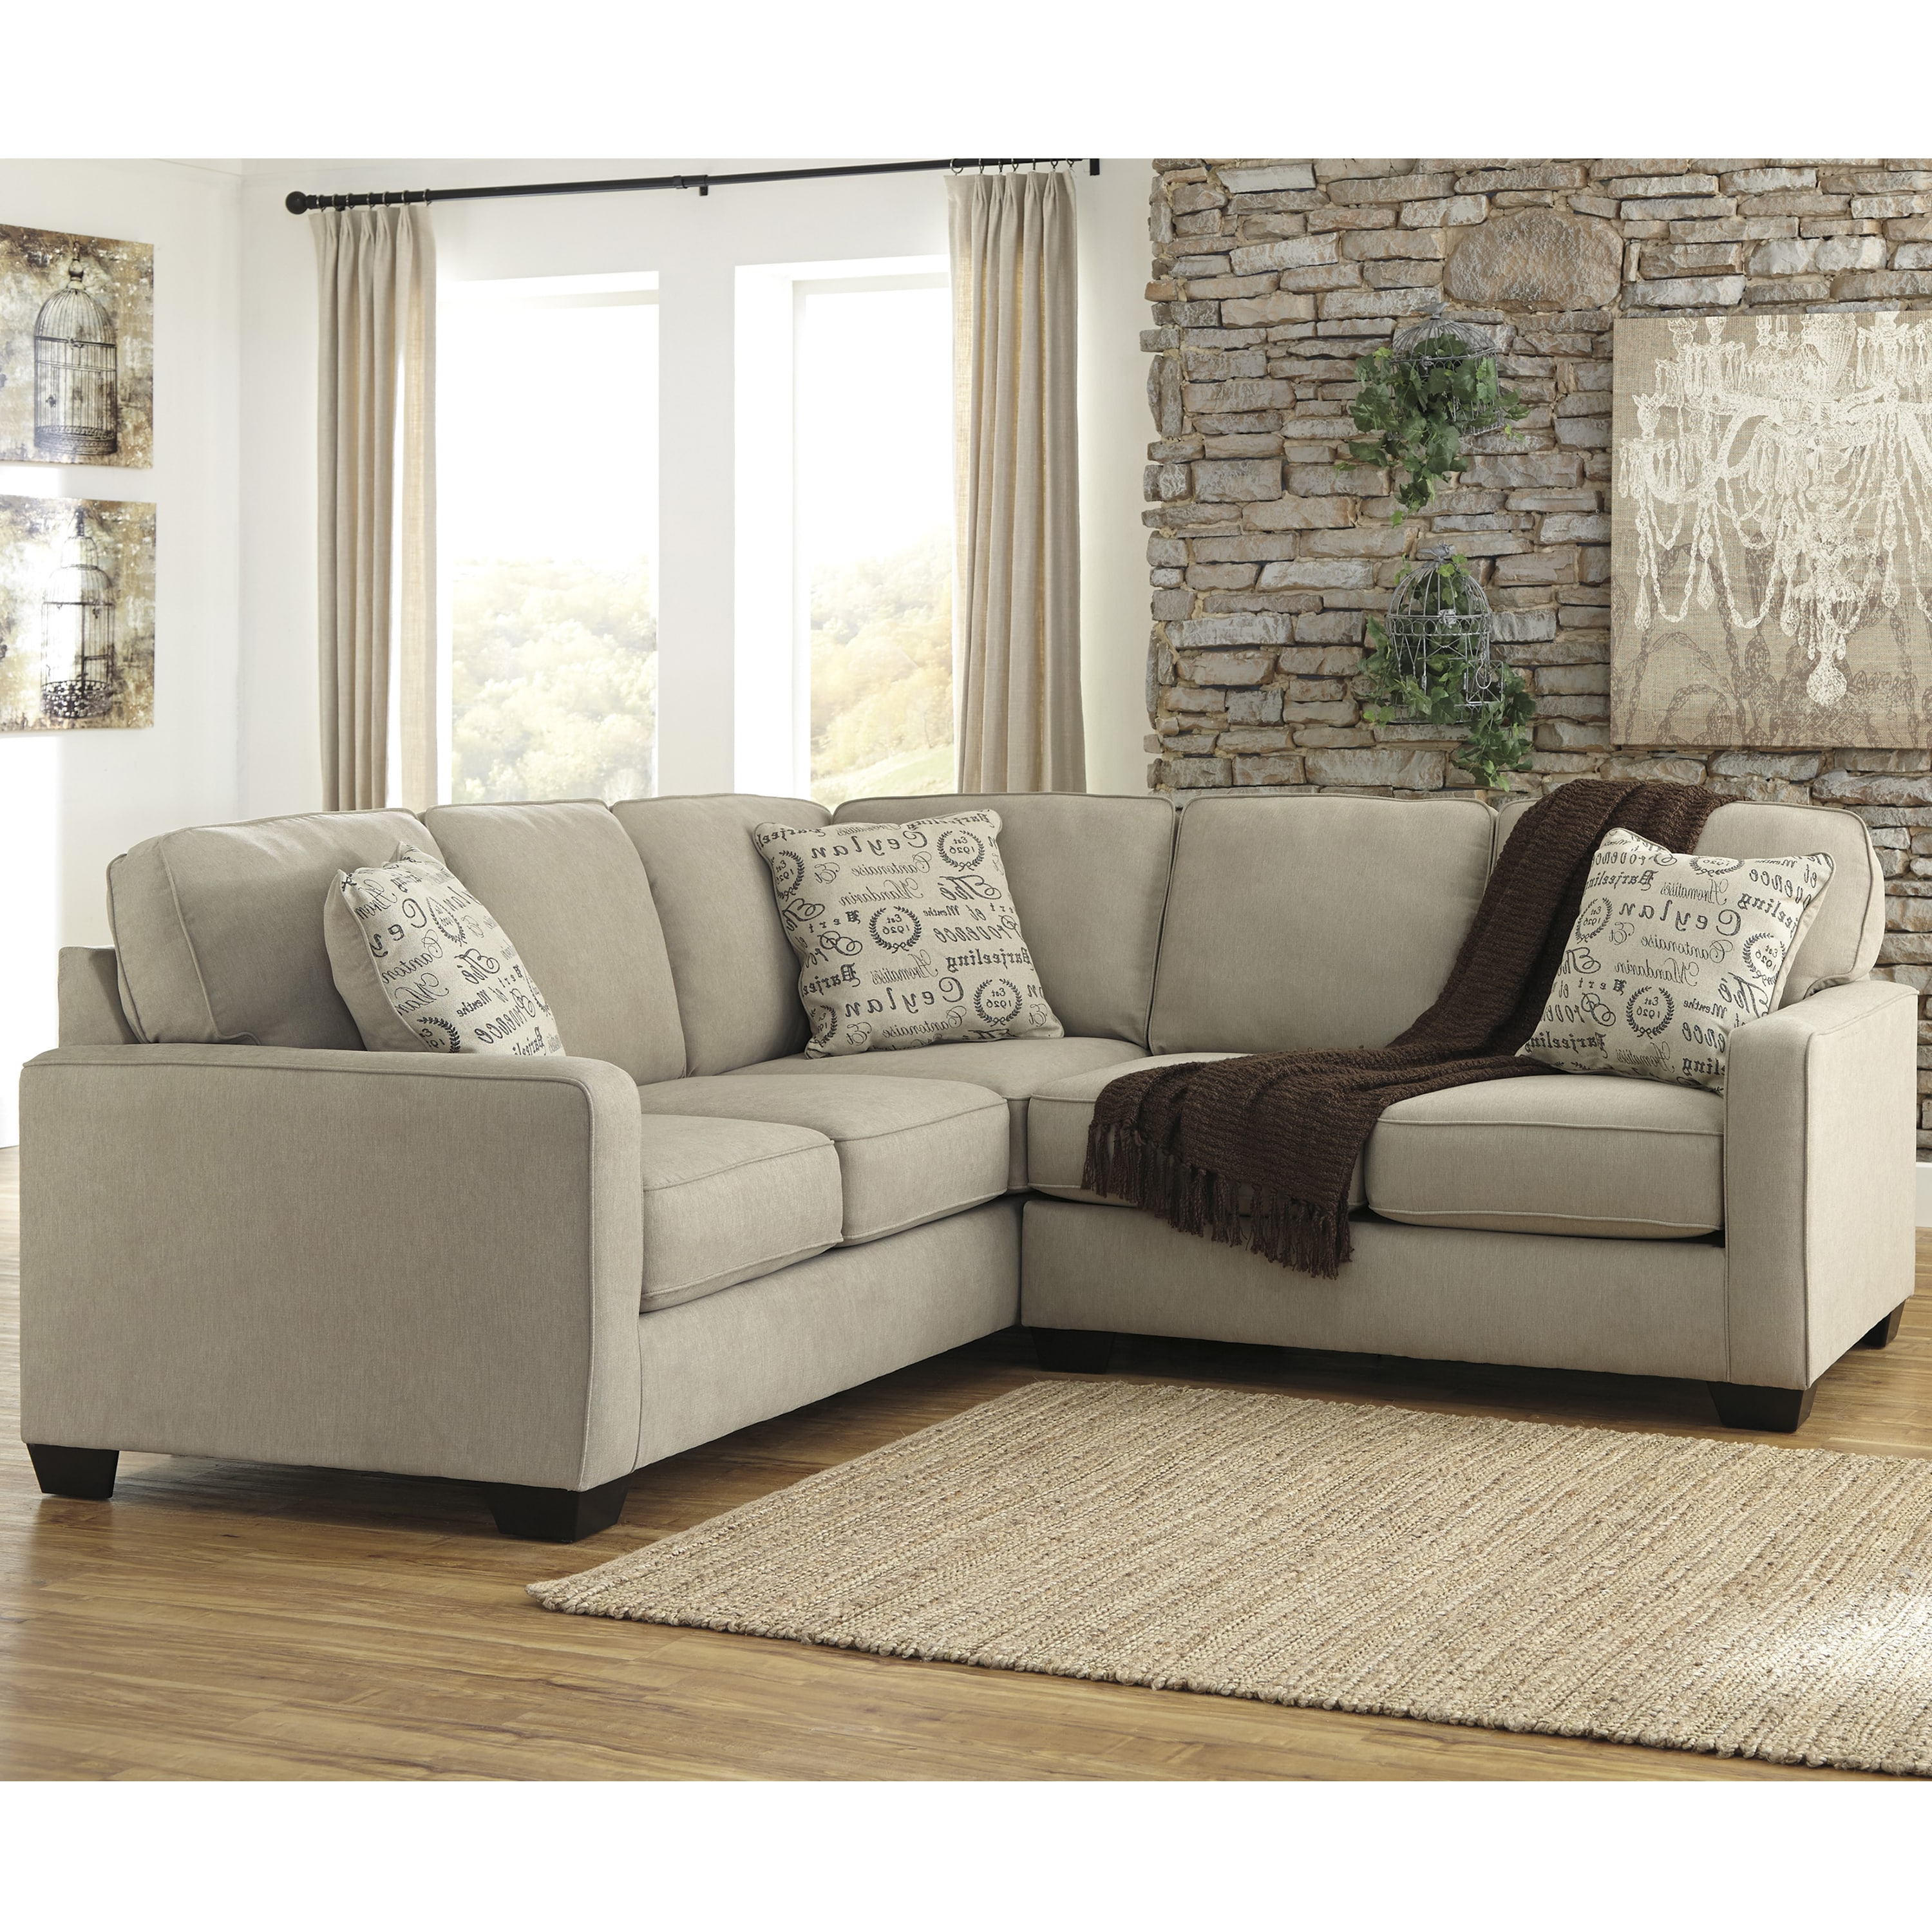 Elm Grande Ii 2 Piece Sectionals For Fashionable Patola Park Patina Large Sectional W/ Chaise (View 5 of 20)